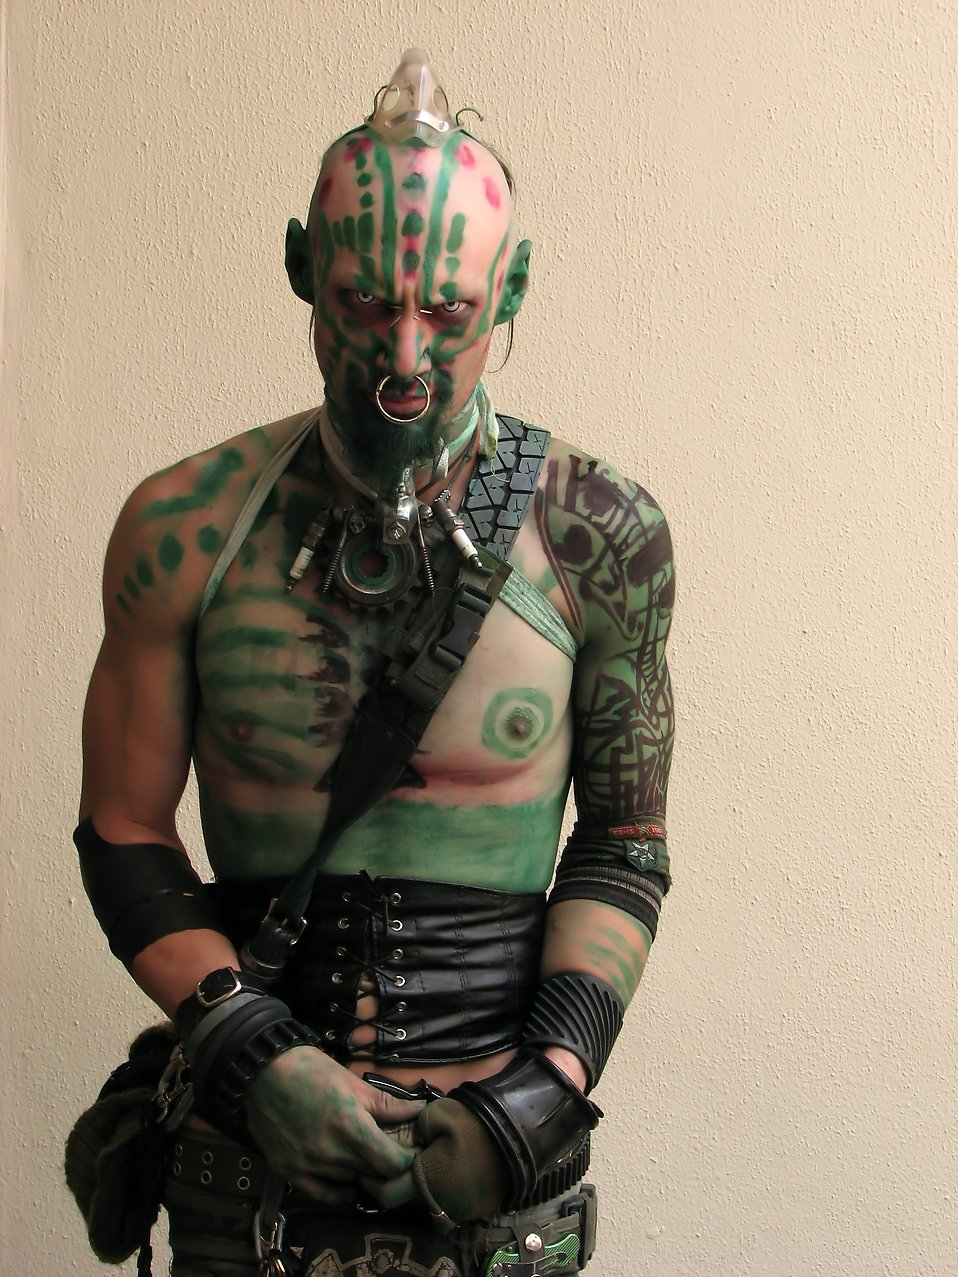 A man with piercings and a costume at Dragoncon 2009 in Atlanta, Georgia : Free Stock Photo